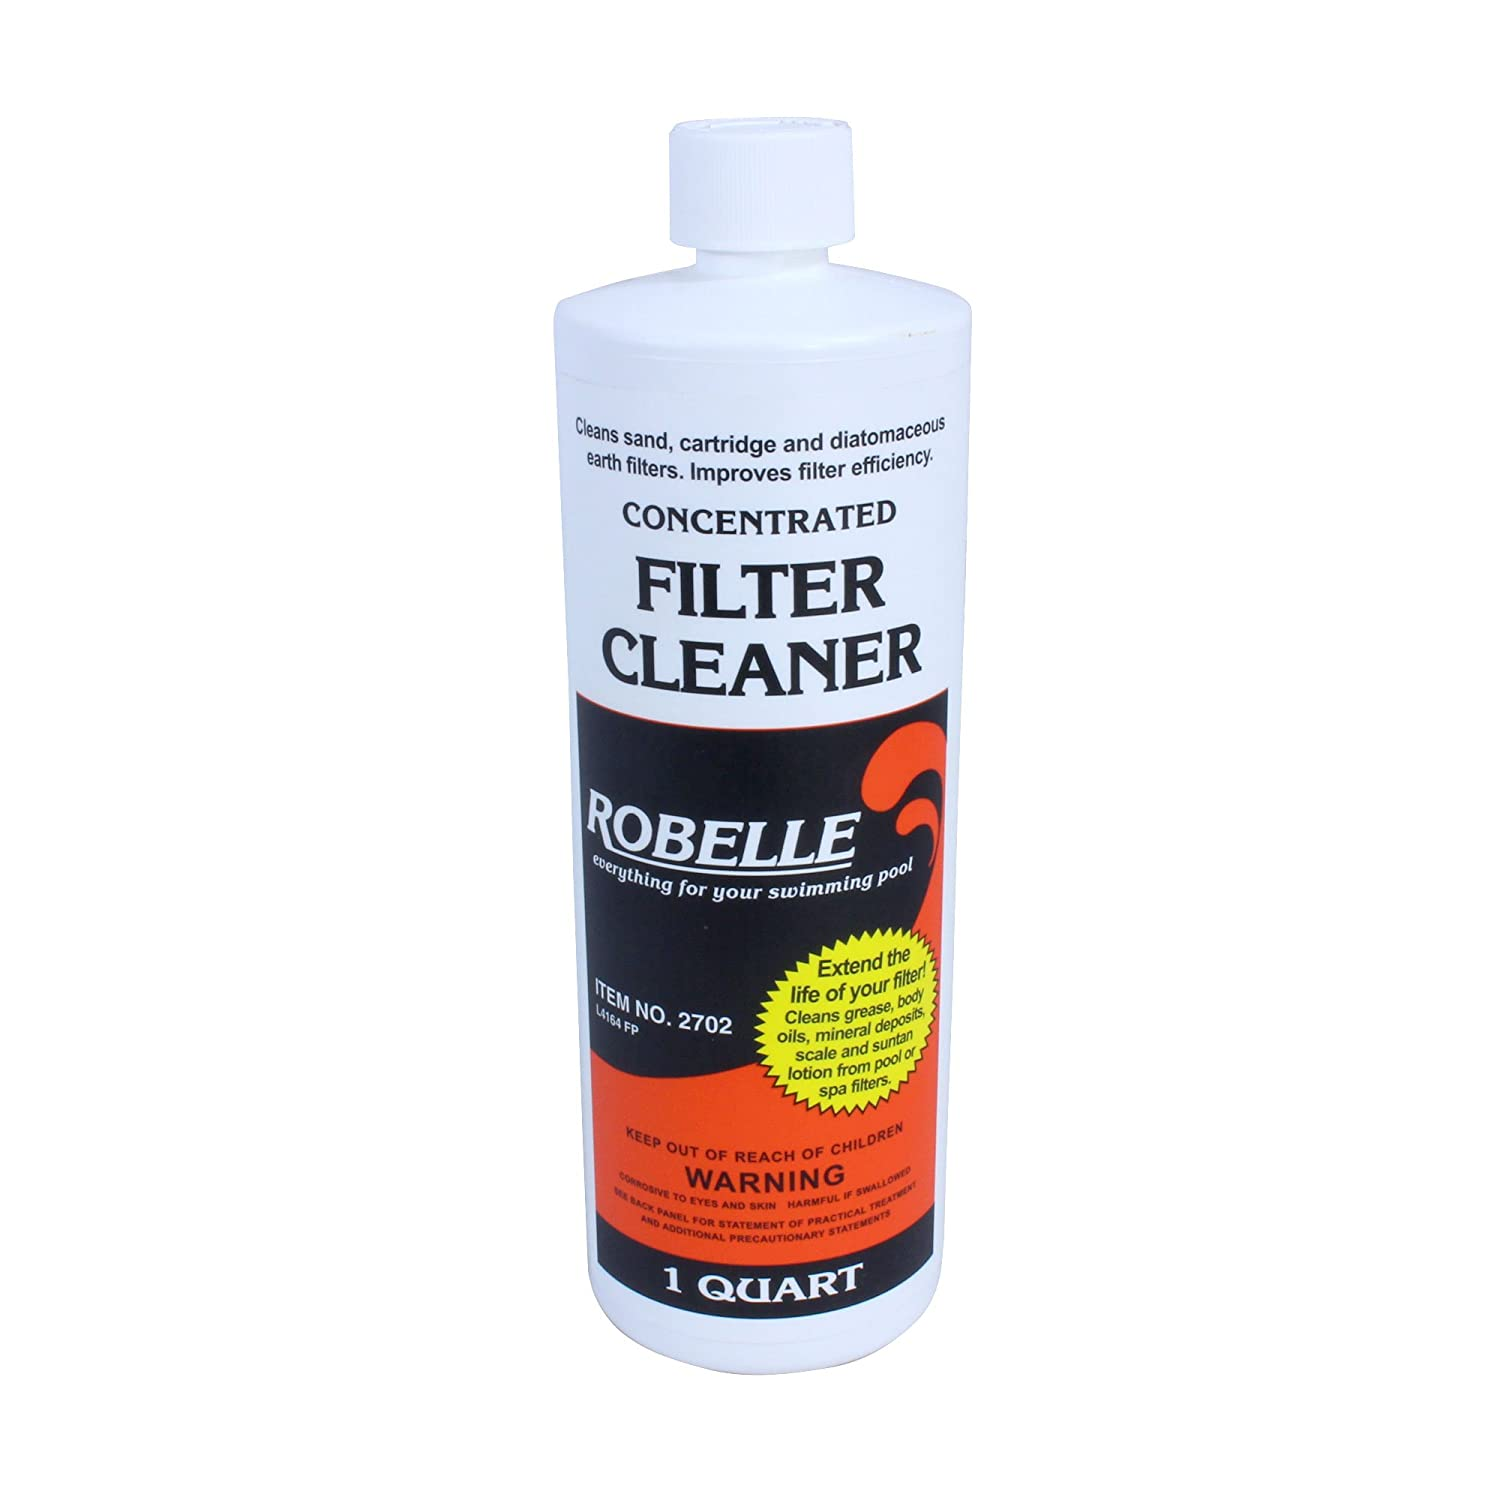 Robelle 2702 Filter Cleaner/Stain Remover for Swimming Pools and Spas, 1-Quart Robelle Industries